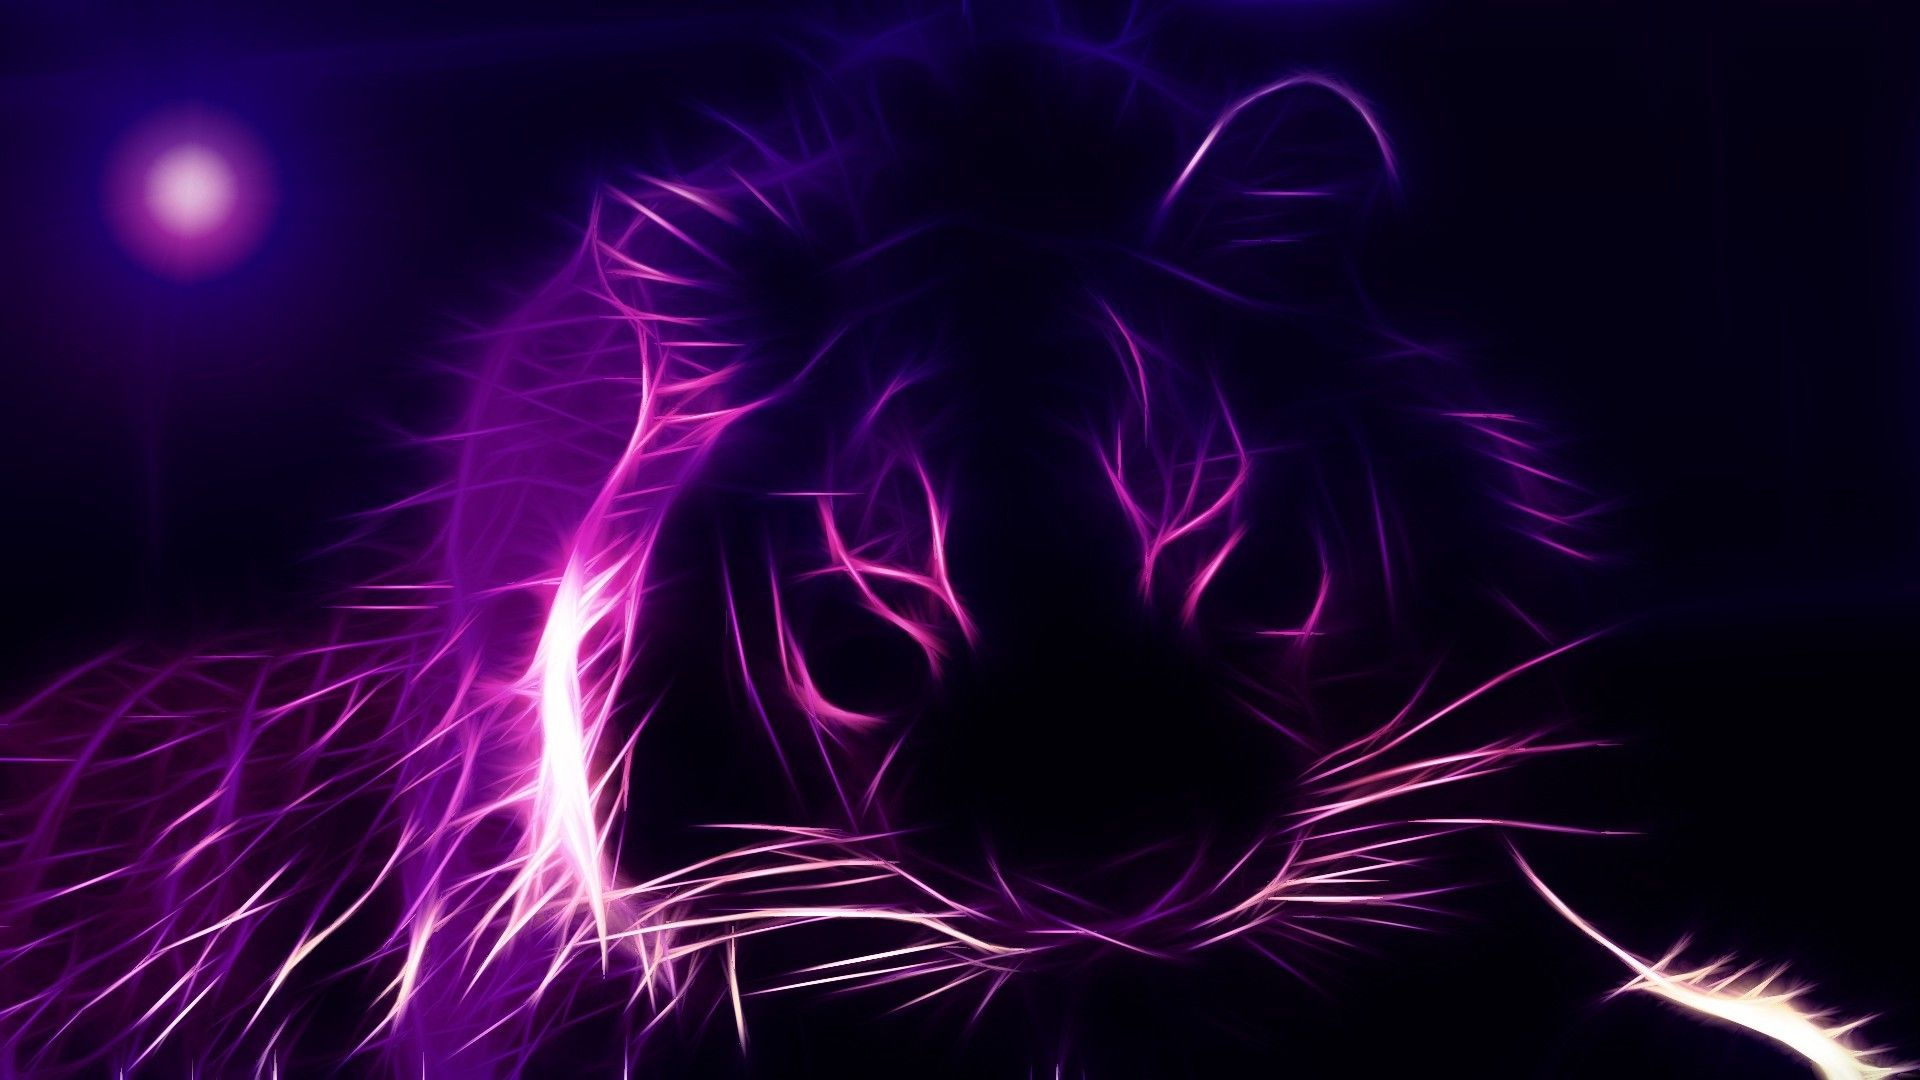 1920x1080 Purple Fantasy Lion Desktop Pc And Mac Wallpaper Fond D Ecran Ordinateur Image Fond Ecran Fond Ecran Animaux